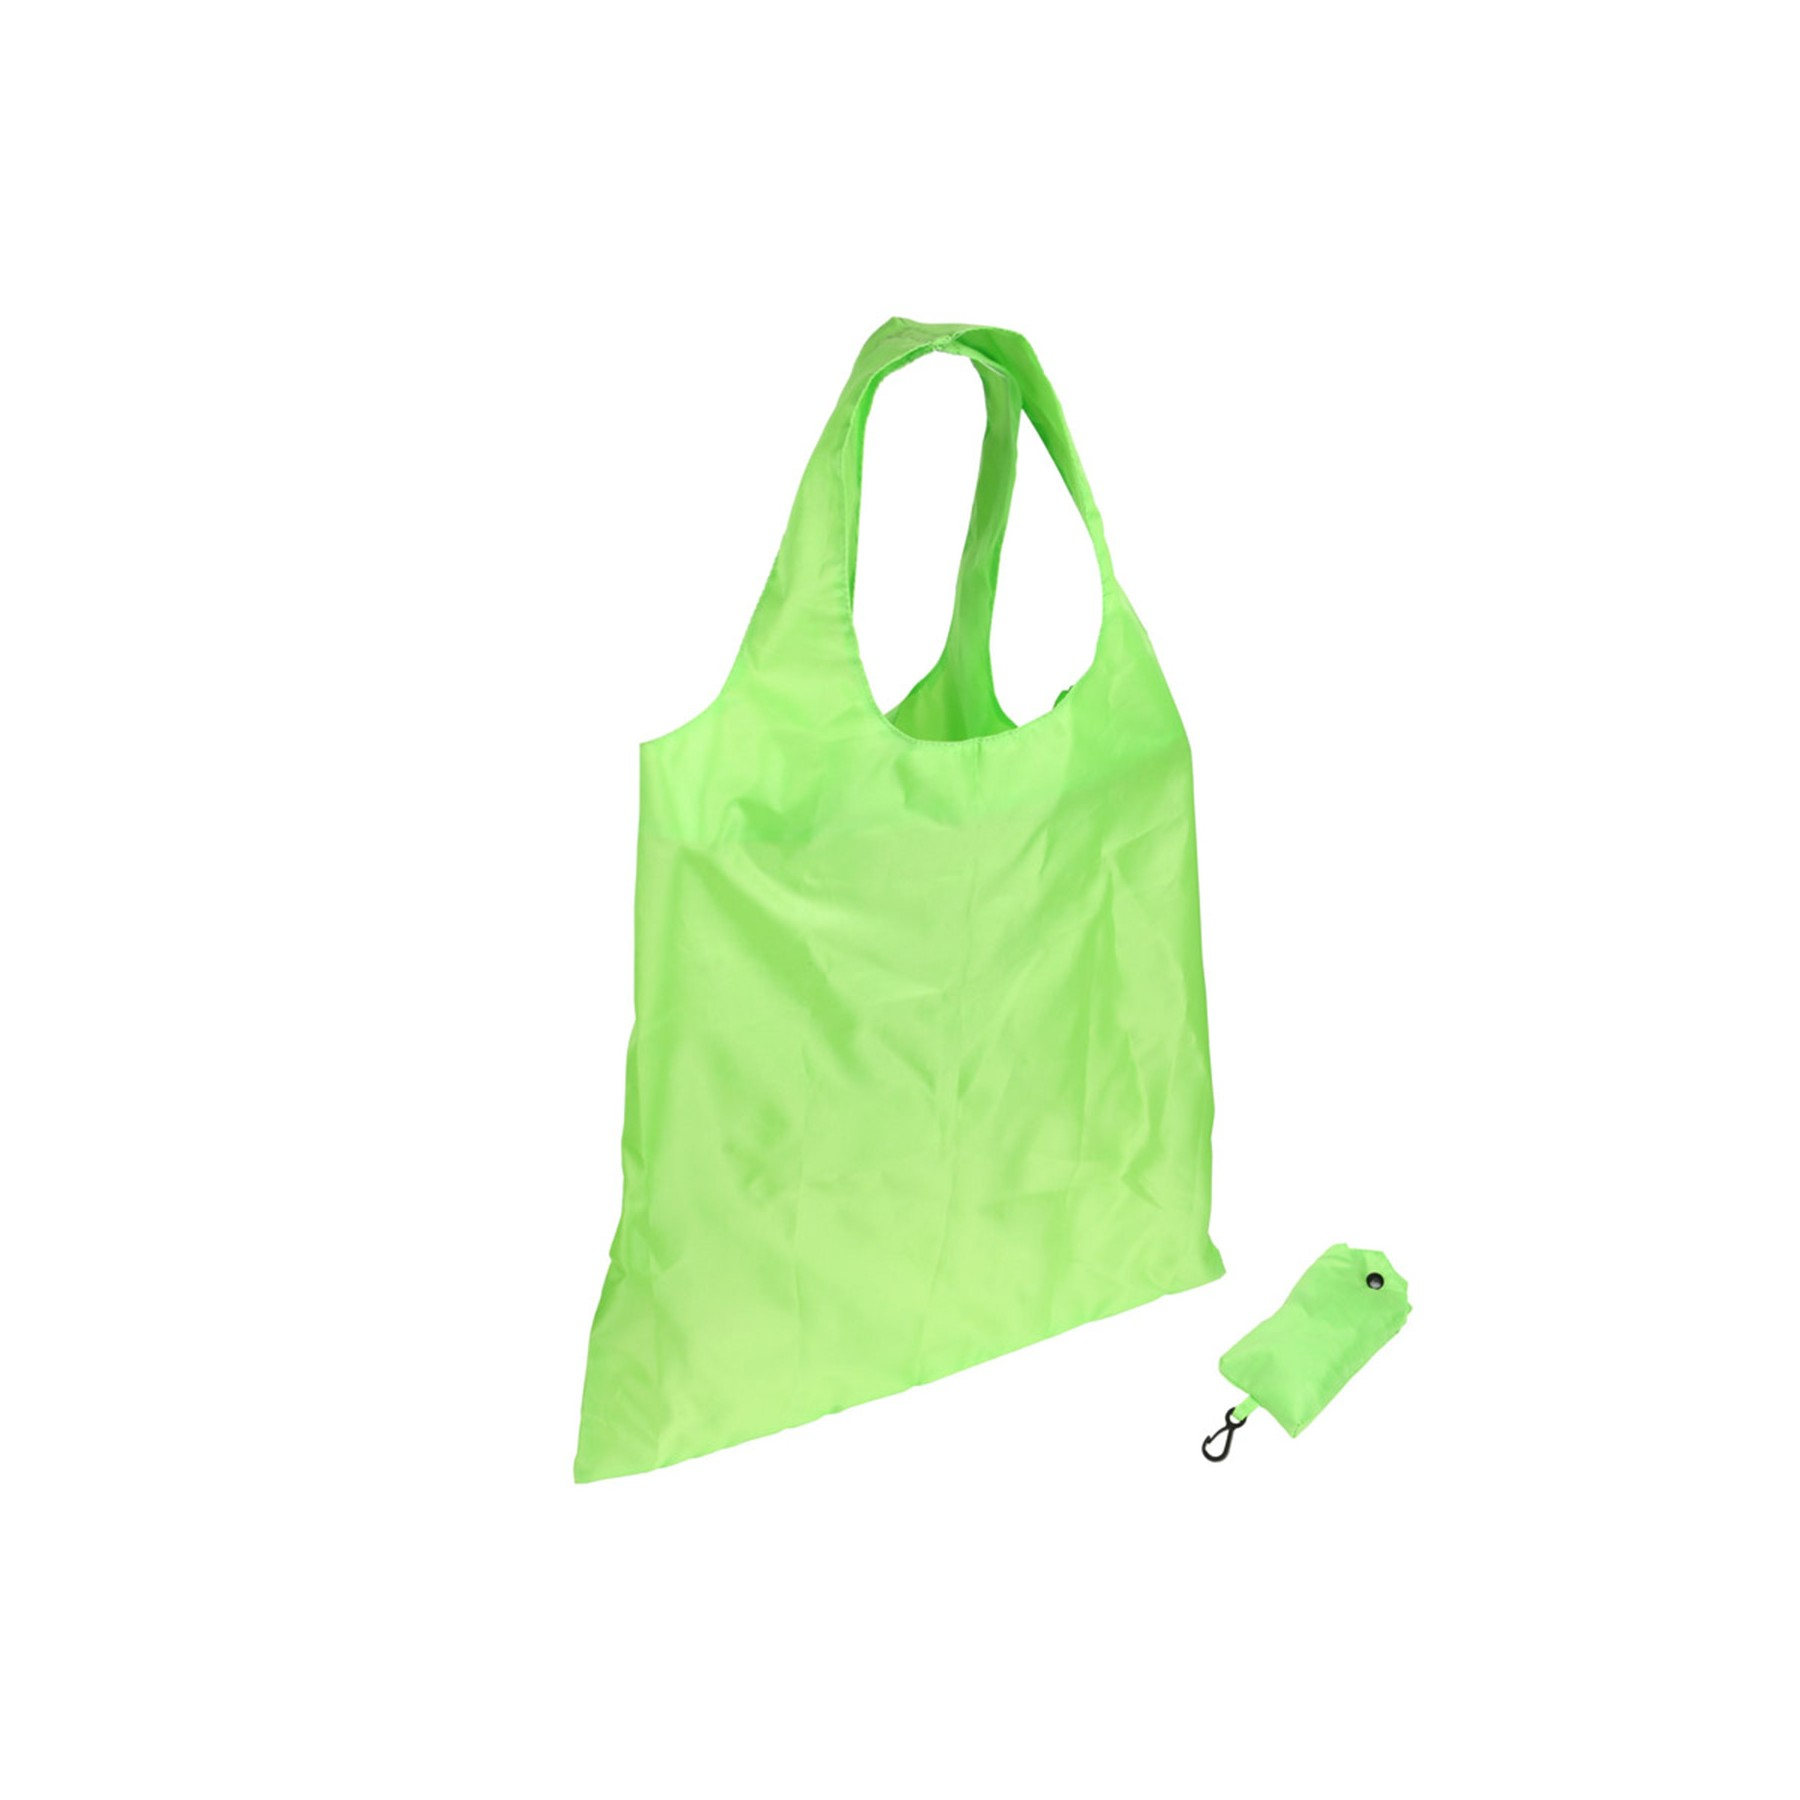 "Spring Sling Folding Tote Bag  190T polyester, Folds conveniently into 5'' x 3'' pouch with snap & carabineer clip. O-shape dual carrying handles, Recyclable & reusable. Complies with CPSIA, Prop 65. 16.0"" W x 16.0"" H"